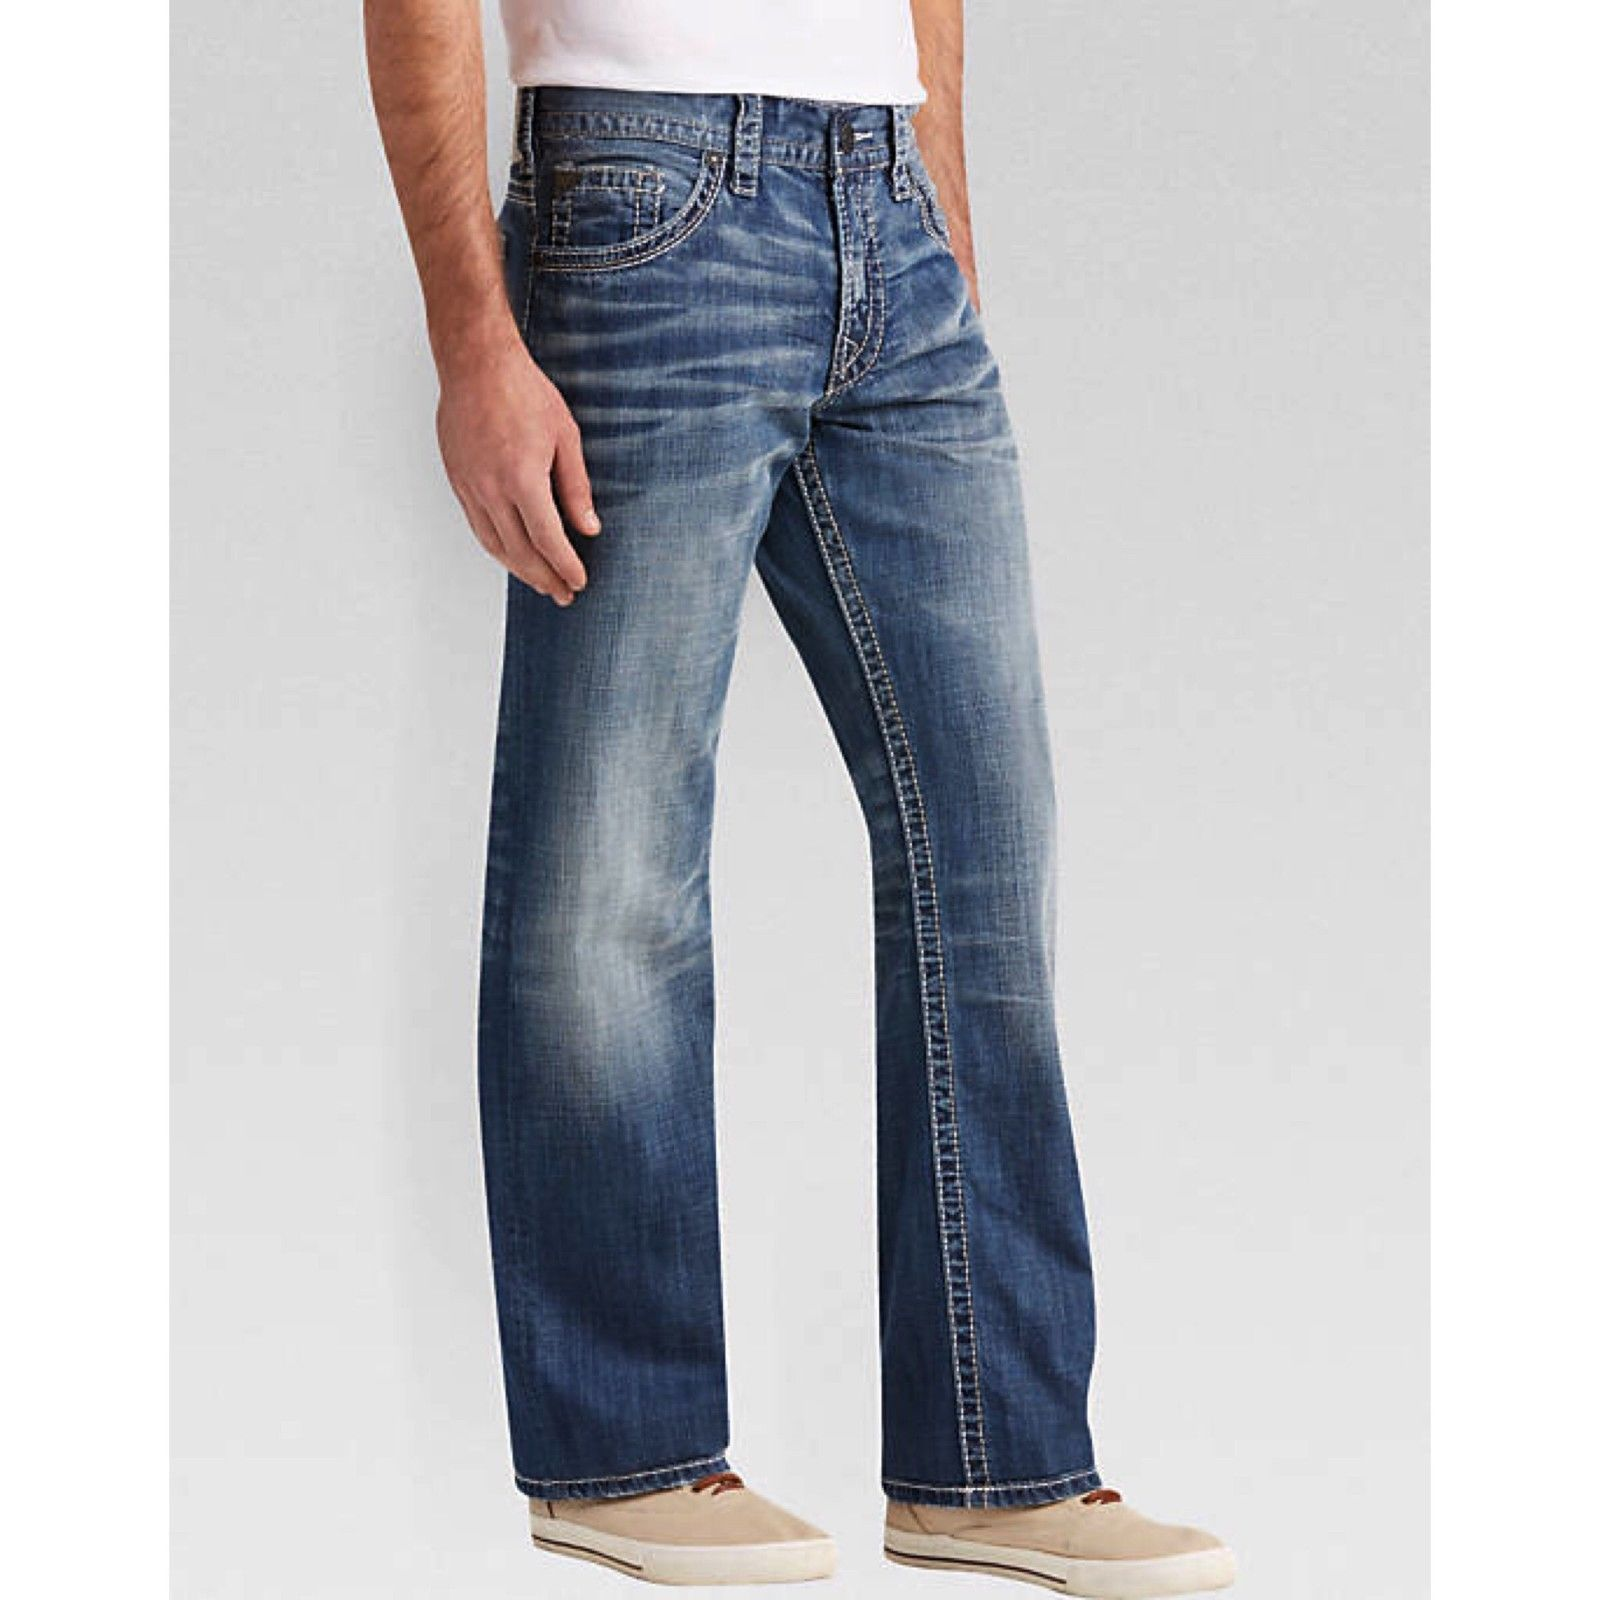 d4bae063 SILVER Jeans Gordie Relaxed Fit Mens Jeans and 50 similar items